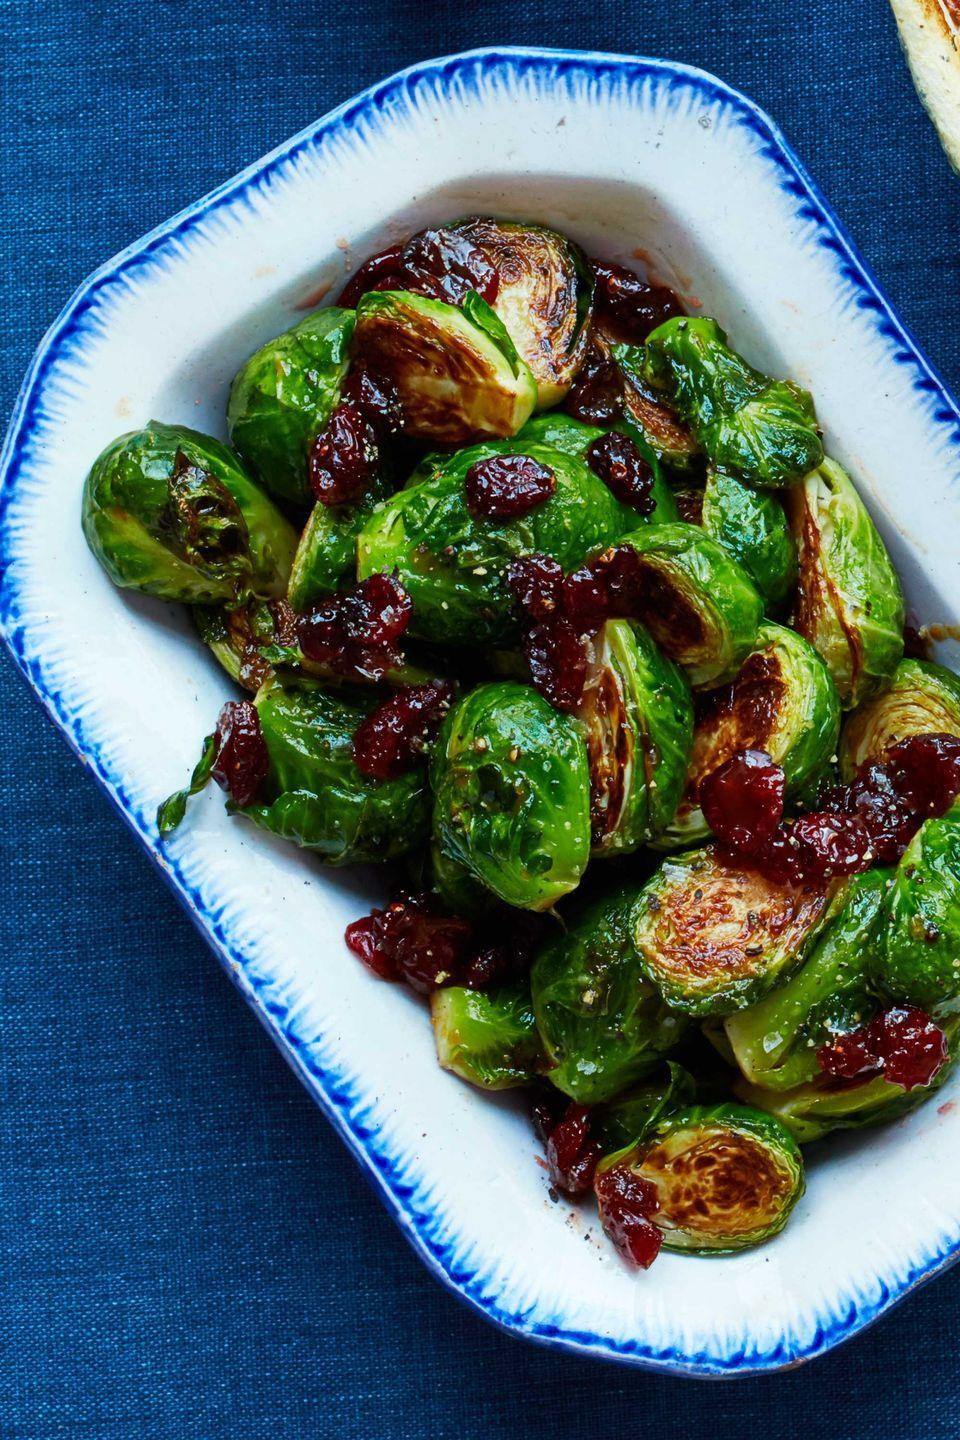 """<p>With just three ingredients, these sprouts couldn't be any easier. The trick is reducing the cider, which makes them taste fancier than they are.</p><p><a href=""""https://www.womansday.com/food-recipes/food-drinks/recipes/a56467/cider-glazed-brussels-sprouts-recipe/"""" rel=""""nofollow noopener"""" target=""""_blank"""" data-ylk=""""slk:Get the Cider-Glazed Brussels Sprouts recipe."""" class=""""link rapid-noclick-resp""""><em><strong>Get the Cider-Glazed Brussels Sprouts recipe.</strong></em></a></p><p><strong>What You'll Need: </strong><a href=""""https://www.amazon.com/dp/B0026RHI3M/ref=dp_prsubs_3?tag=syn-yahoo-20&ascsubtag=%5Bartid%7C10070.g.16%5Bsrc%7Cyahoo-us"""" rel=""""nofollow noopener"""" target=""""_blank"""" data-ylk=""""slk:Good Cook non-stick baking sheet"""" class=""""link rapid-noclick-resp"""">Good Cook non-stick baking sheet</a> ($18 for 3, Amazon)<br></p>"""